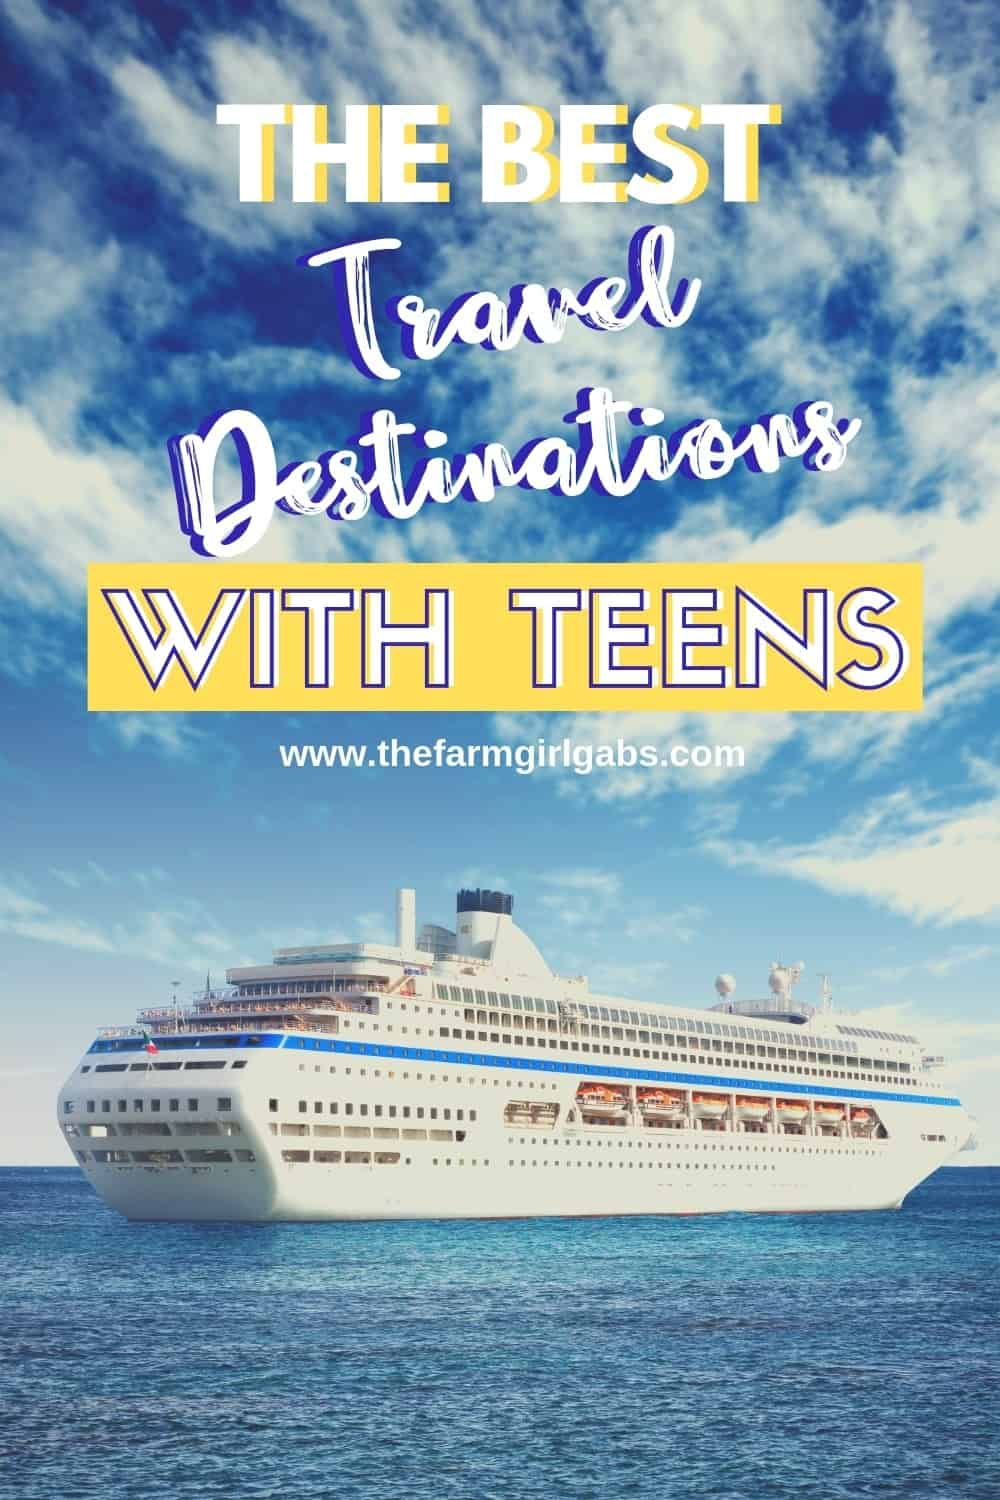 Want to cross a few places off your family bucket list this summer? If you are traveling with teens, check out these Best Travel Destinations With Teens #familytravel #teenagers #parentingteens #travel #luxurytravel